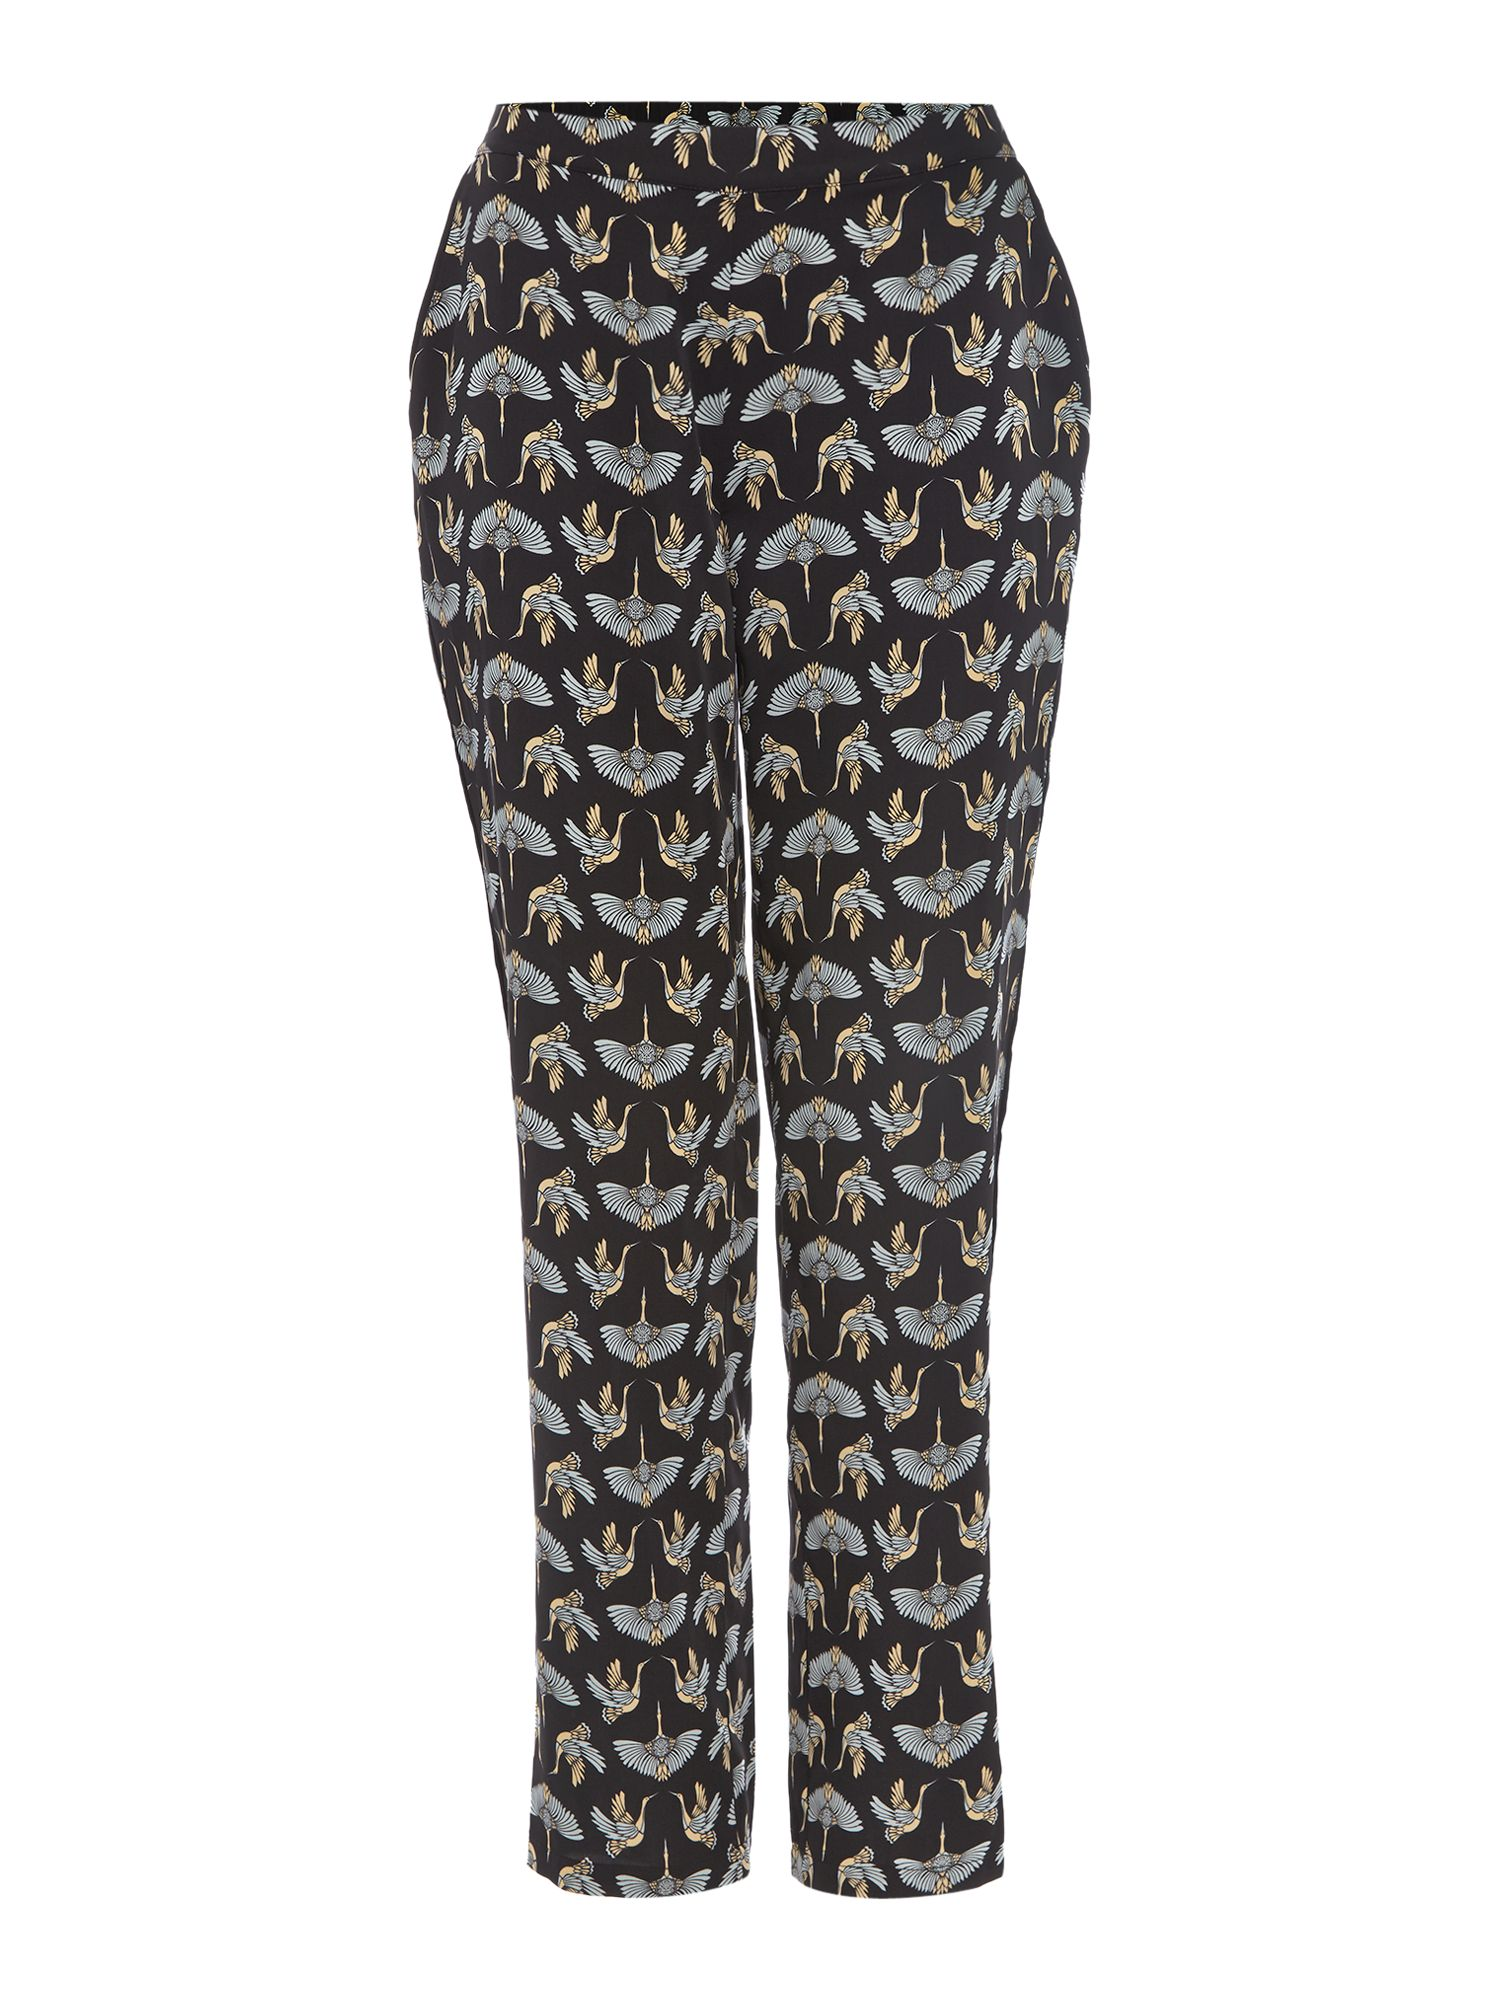 Biba Biba Fan crane print trousers, Multi-Coloured